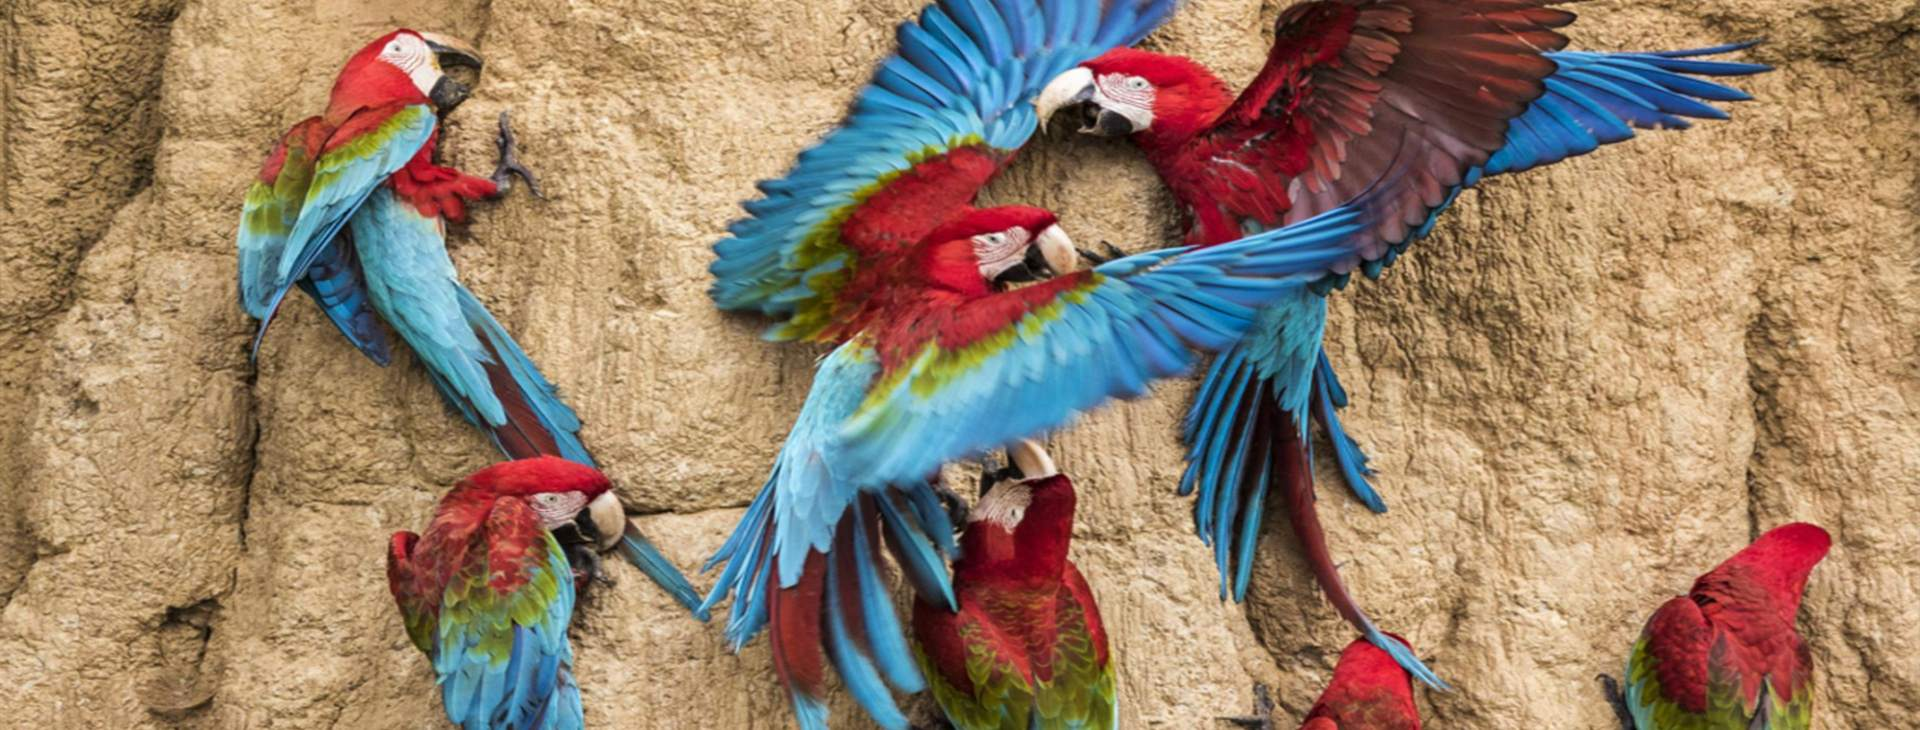 Tambopata Rainforest Macaw Clay Lick Chuncho 2dias - Amazon Wildlife Peru Travel